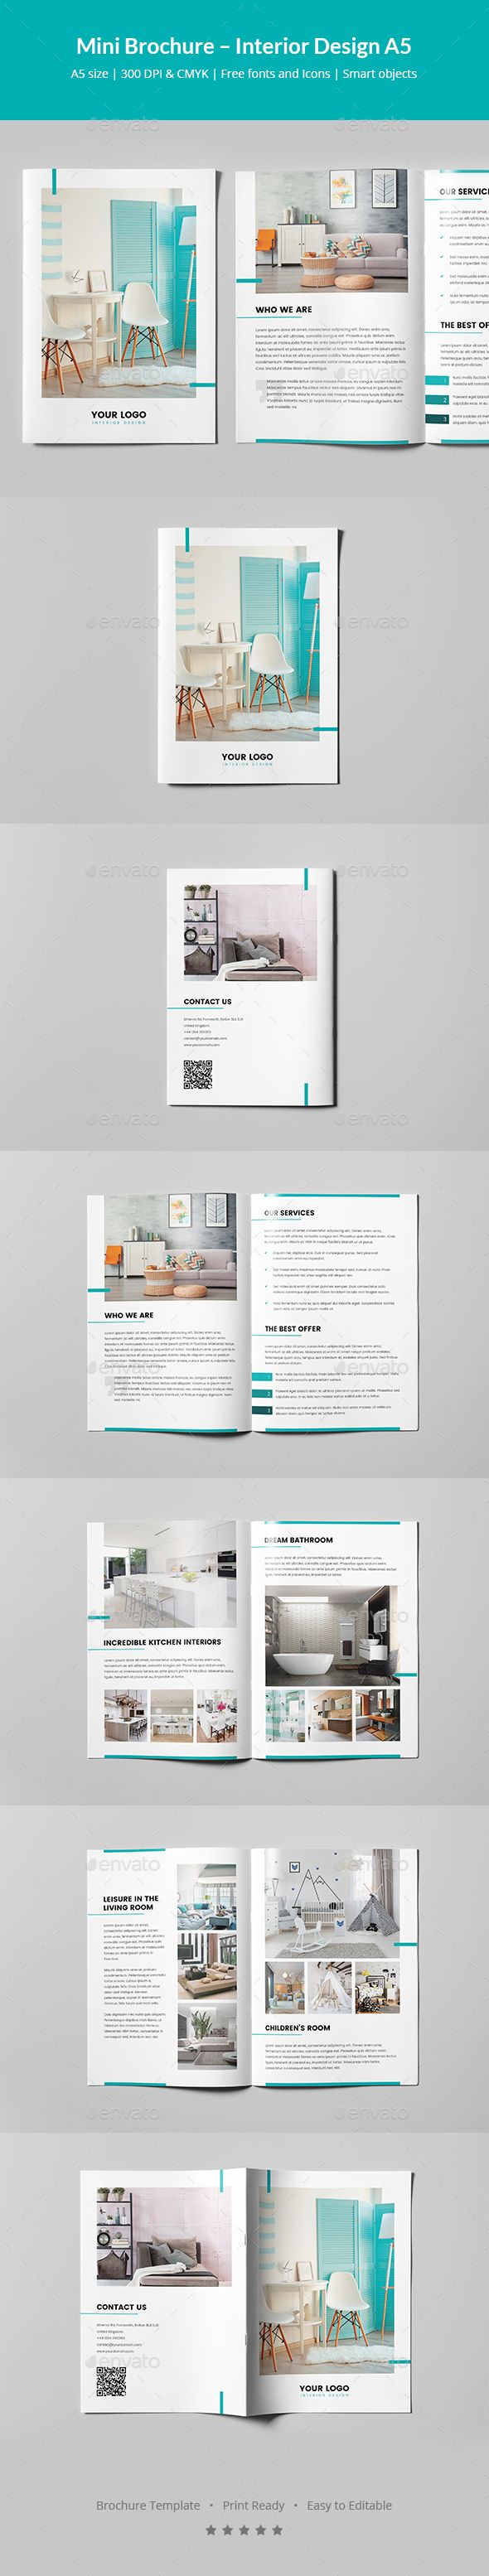 Mini Brochure Interior Design A Brochures Brochure Template - Mini brochure template